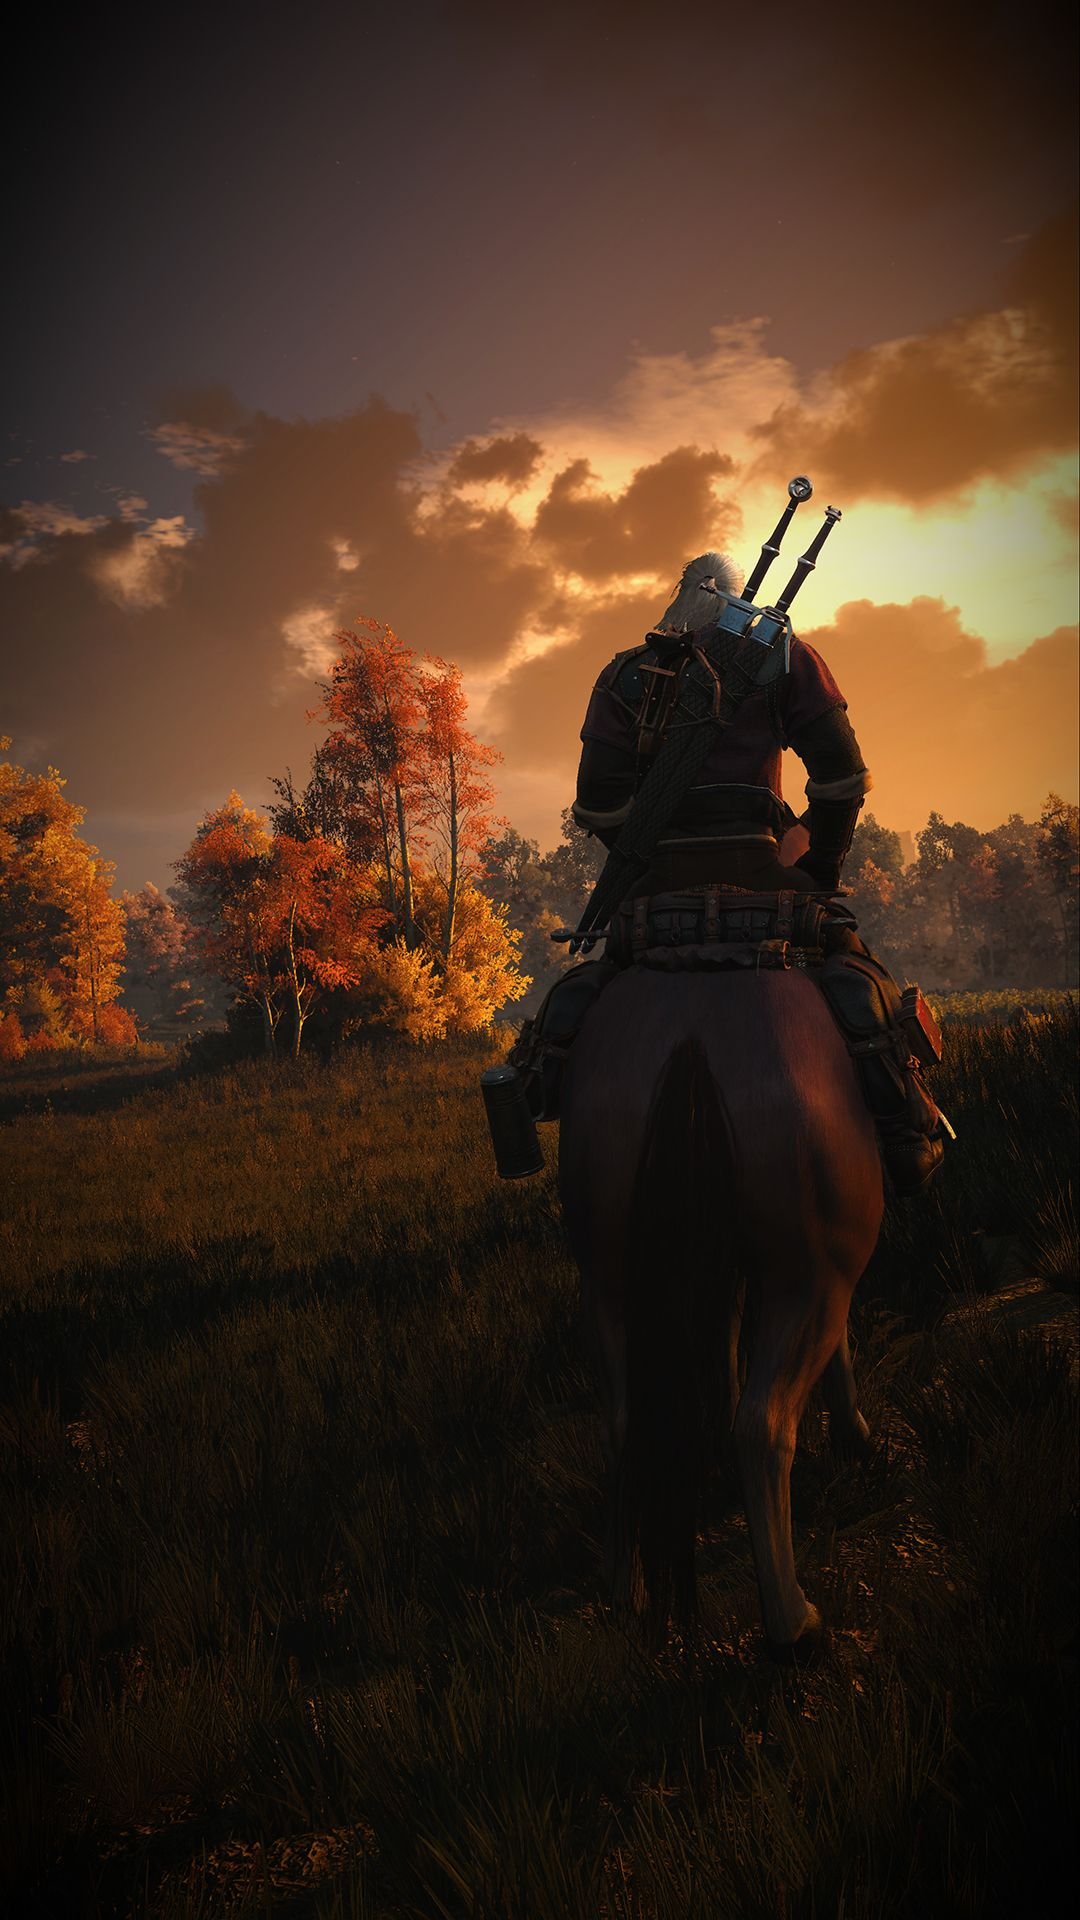 The Witcher 3 Wallpaper Hd Hupages Download Iphone Wallpapers